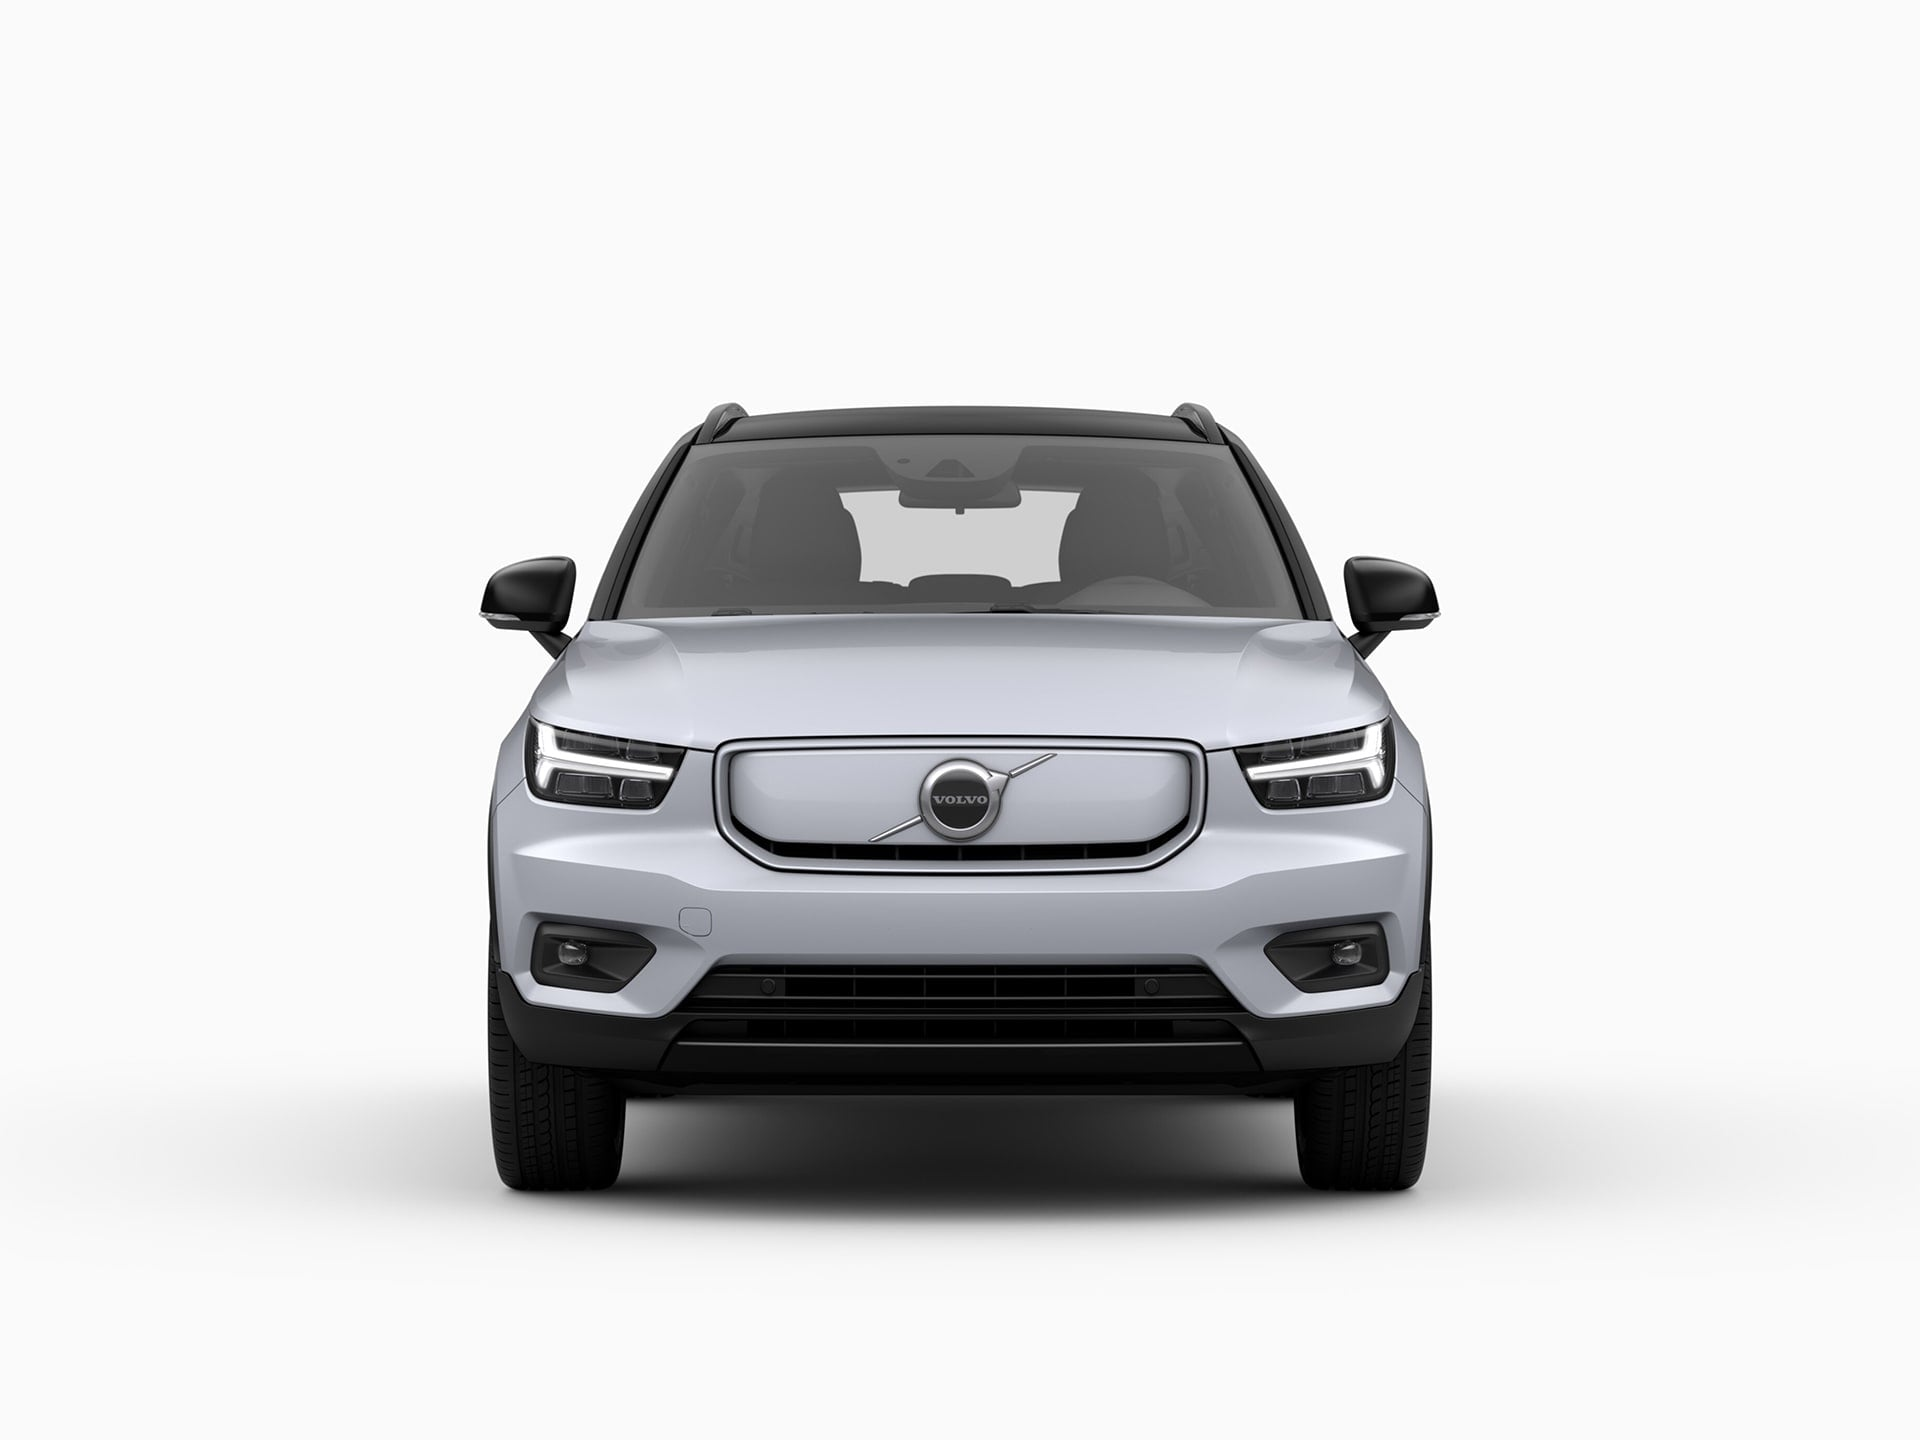 The front of a Volvo XC40 Recharge electric SUV.